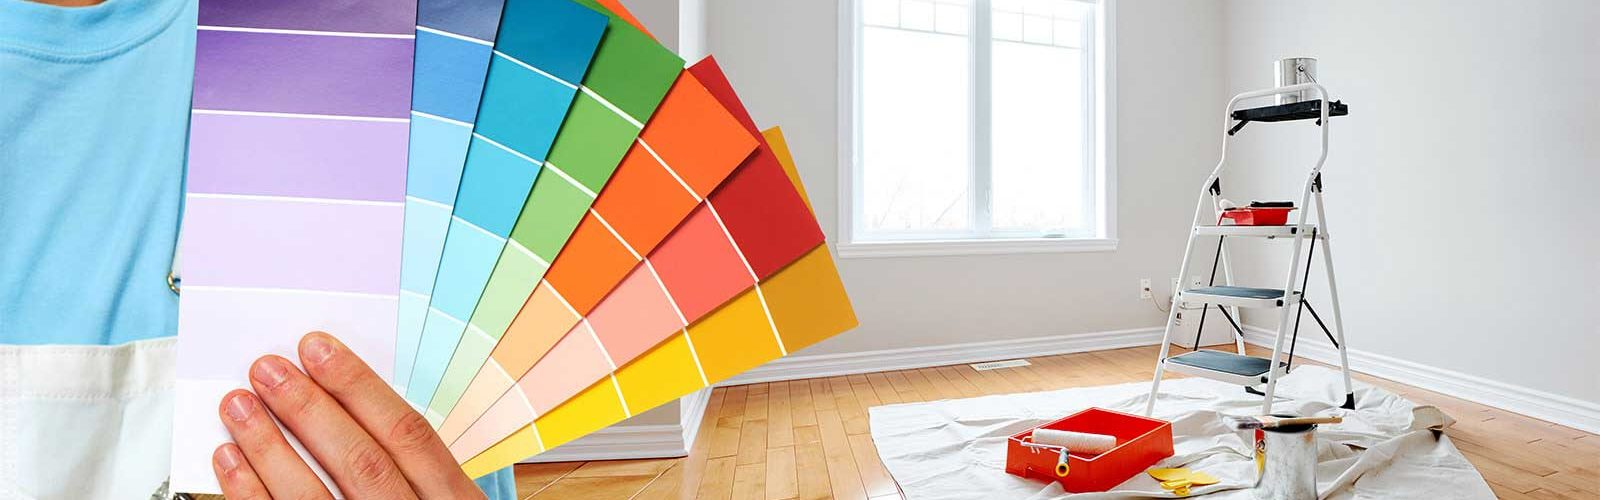 How To Select The Right Commercial Painting Company